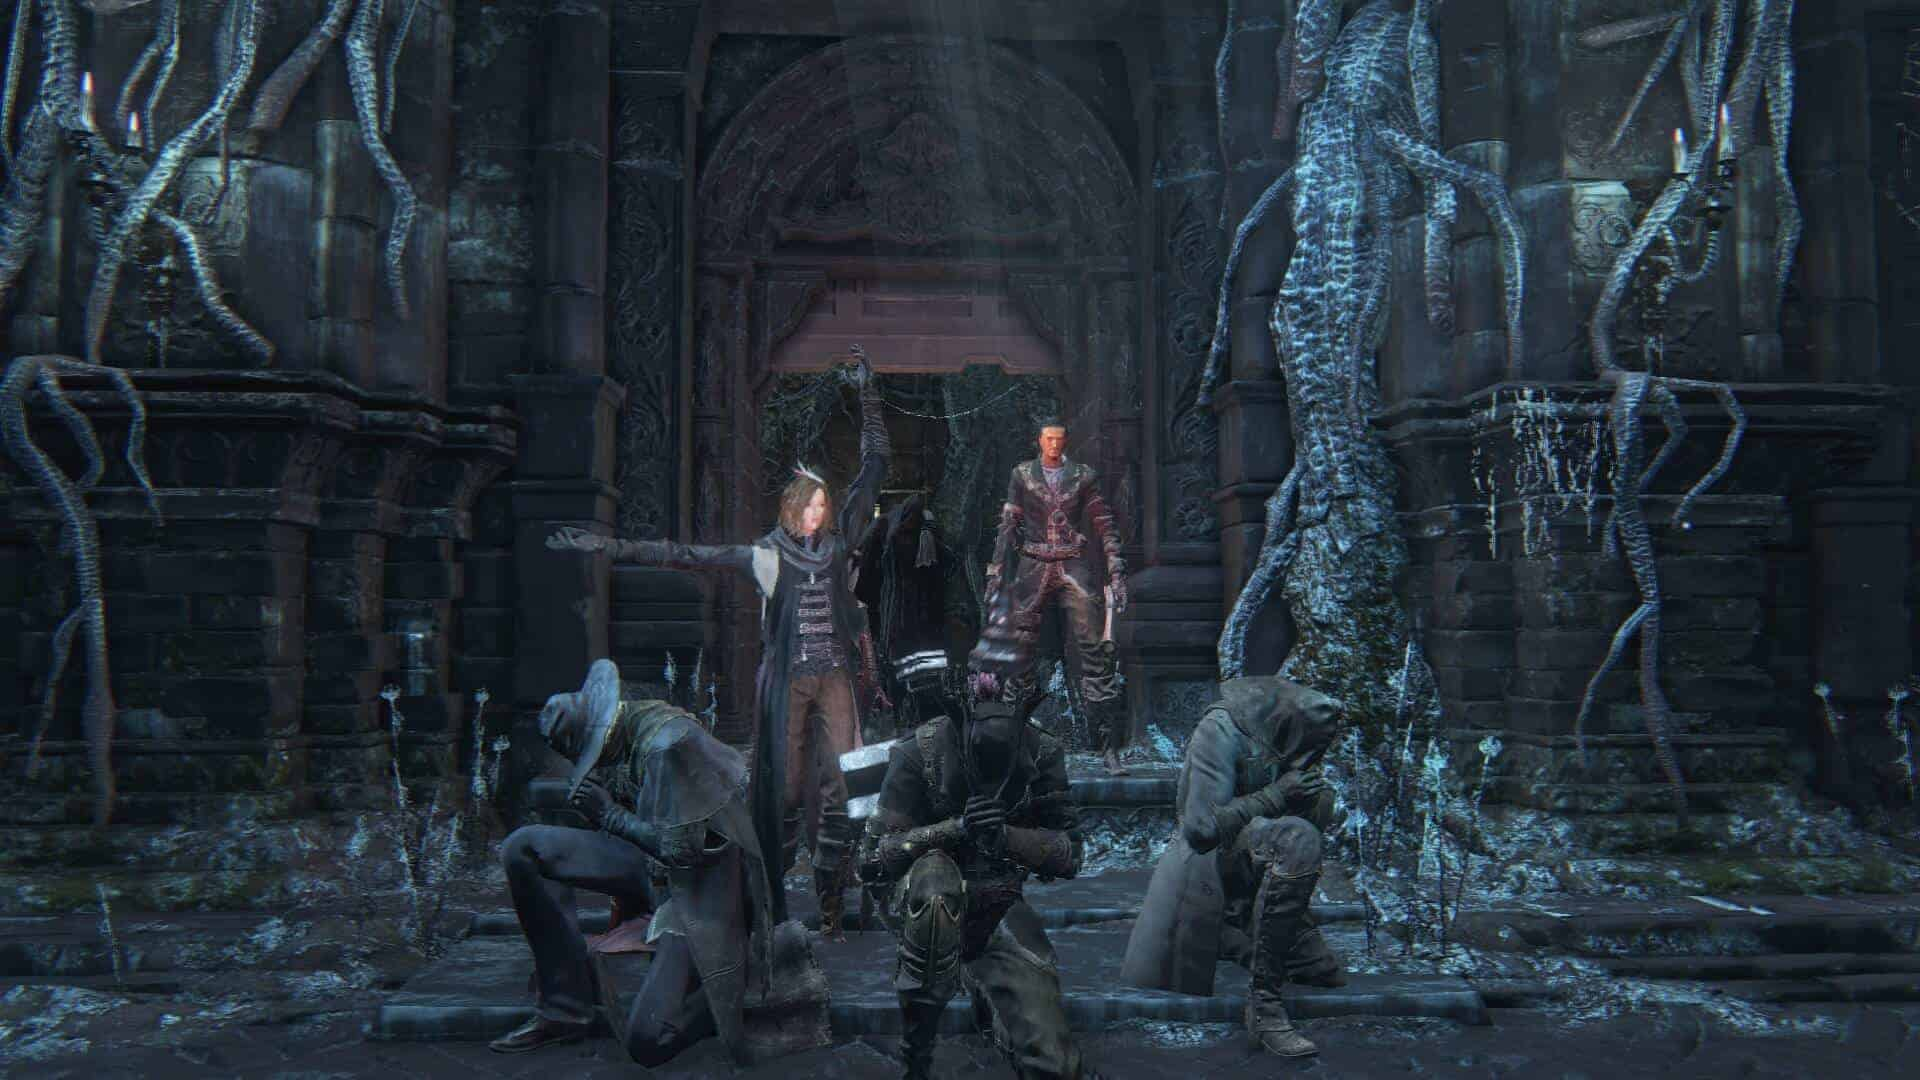 Advanced Bloodborne Pvp Co Op Guide 3v2 Sinister Chalices Unleash The Gamer Mugenmonkey is a site dedicated to providing tools, calculators, and build planners for the souls and bloodborne series of video games. advanced bloodborne pvp co op guide